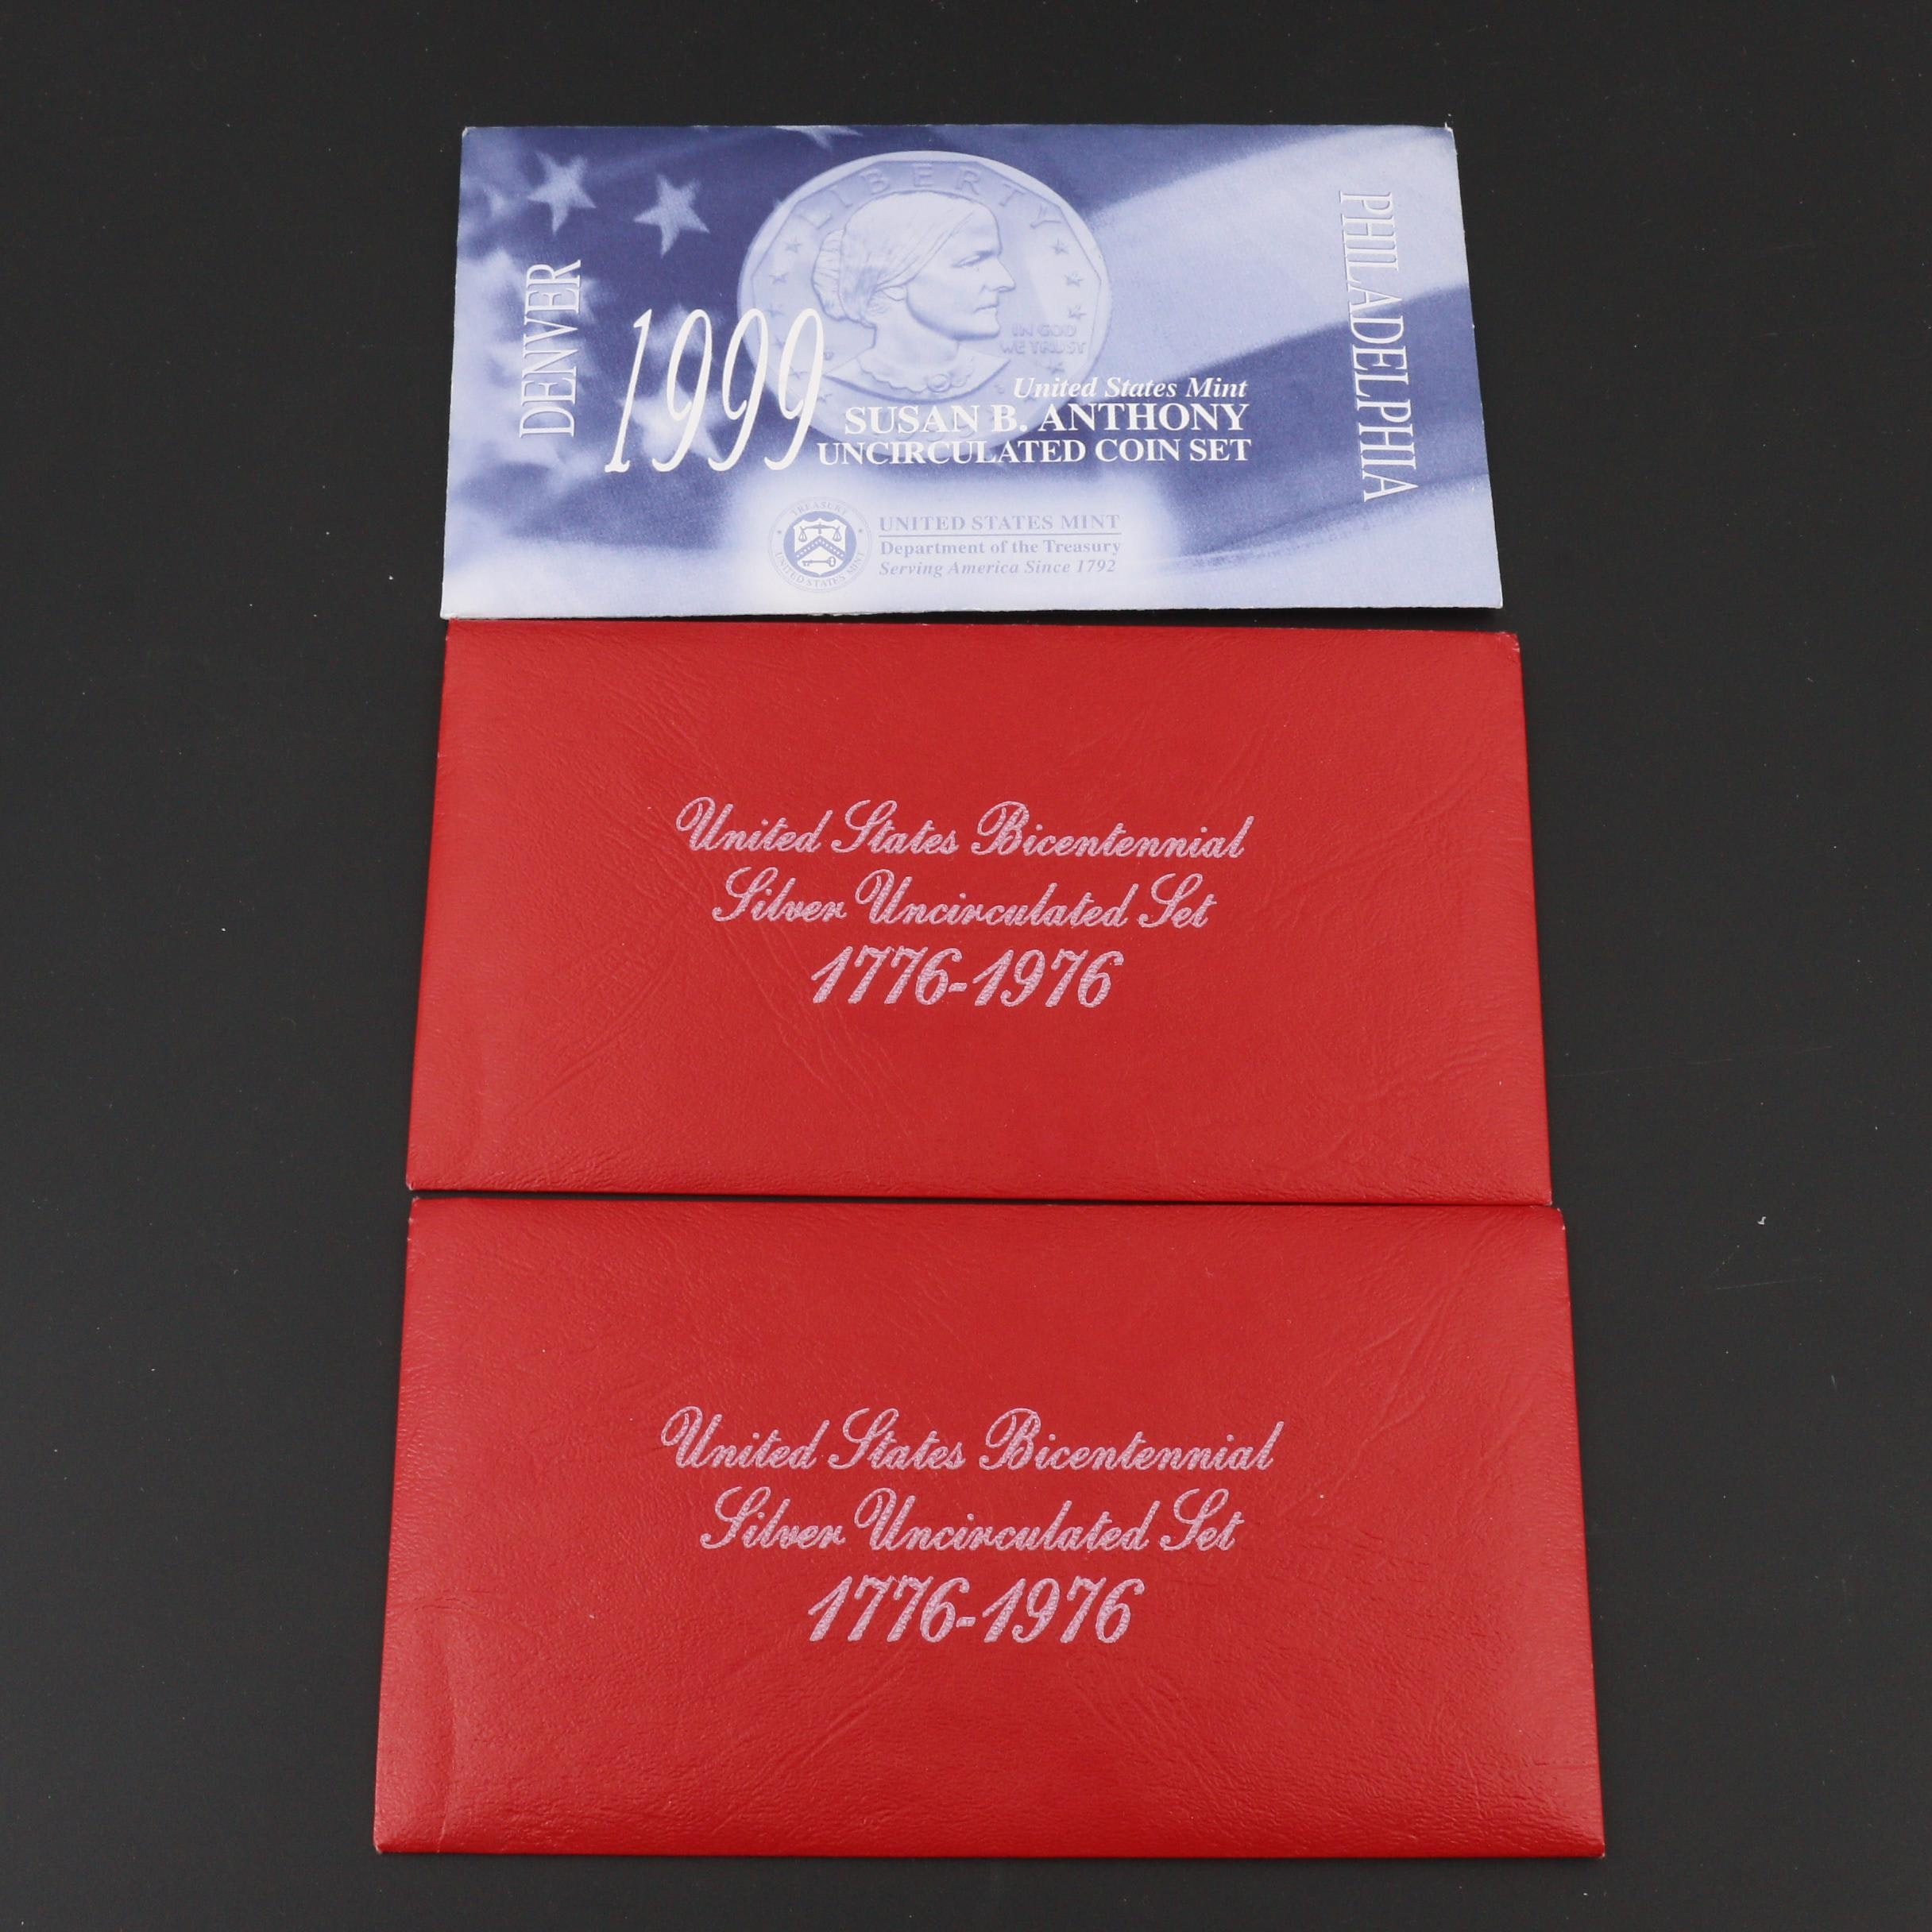 Two U.S. Bicentennial Silver Uncirculated Sets and a Susan B. Anthony Coin Set